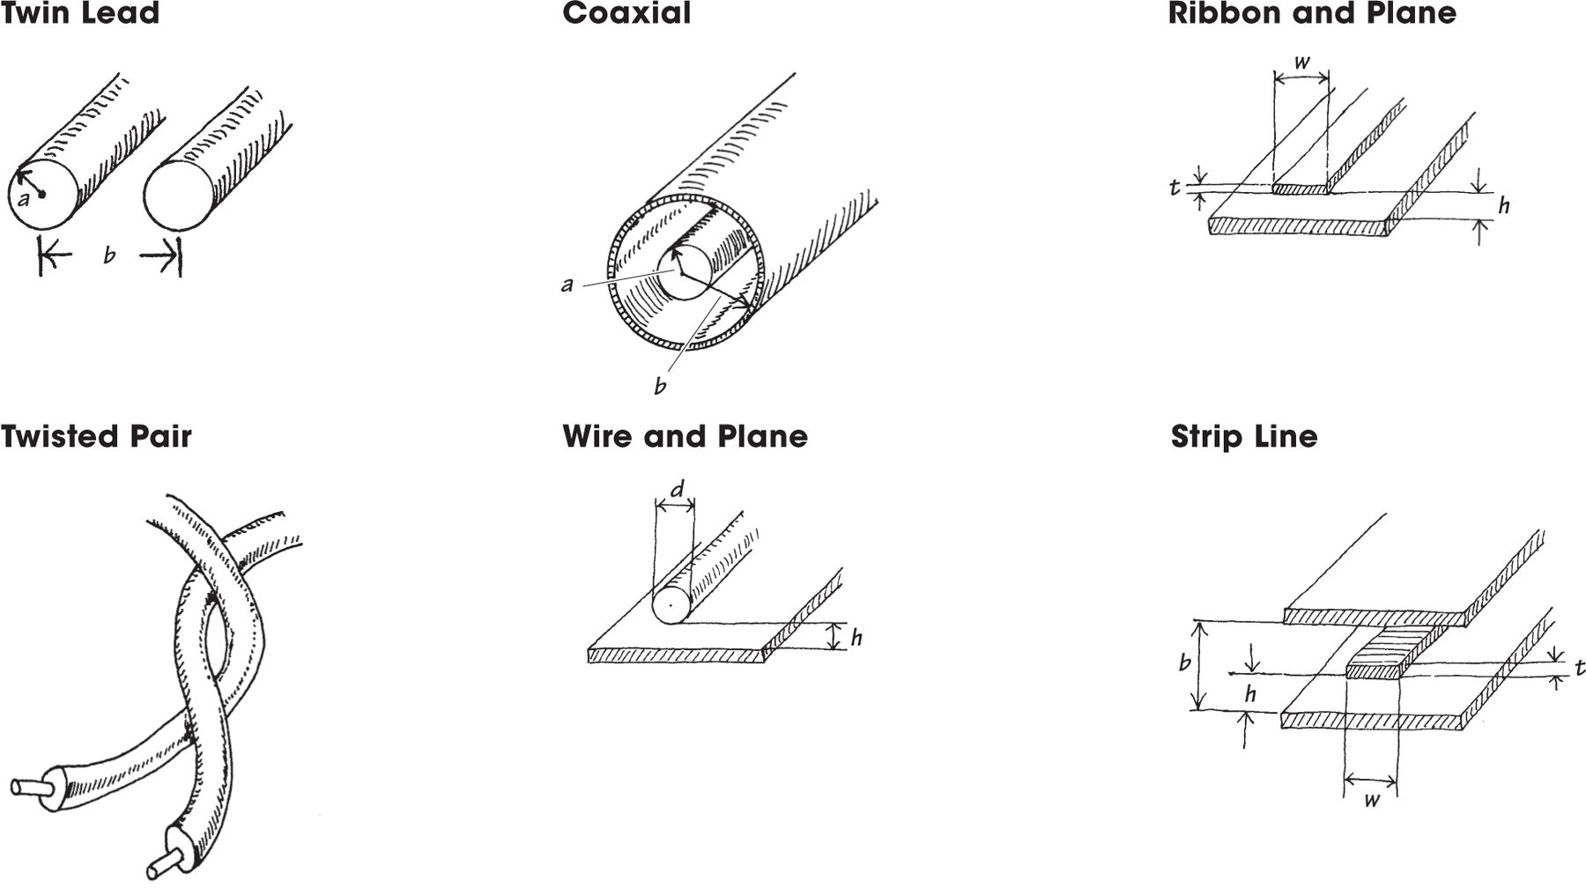 Basic Electronic Circuit Components Practical Electronics For Coaxial Cable Tester Projects Circuits The Wires Within Cables May Be Solid Core Stranded Braided Or Some Combination In Between Typical Wire Configurations Include